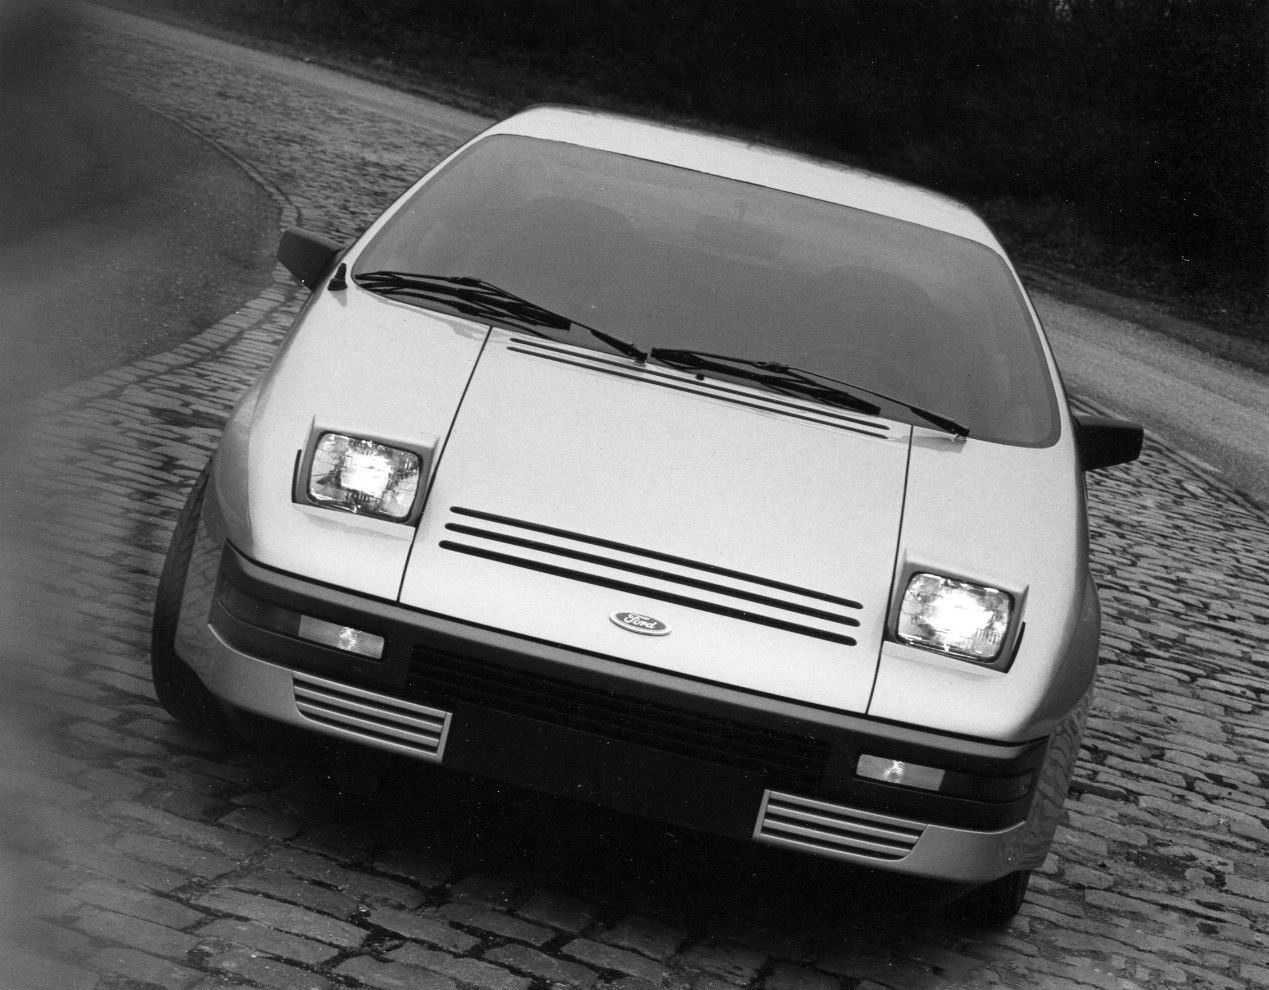 1982_Ghia_Ford_Quicksilver_02_1